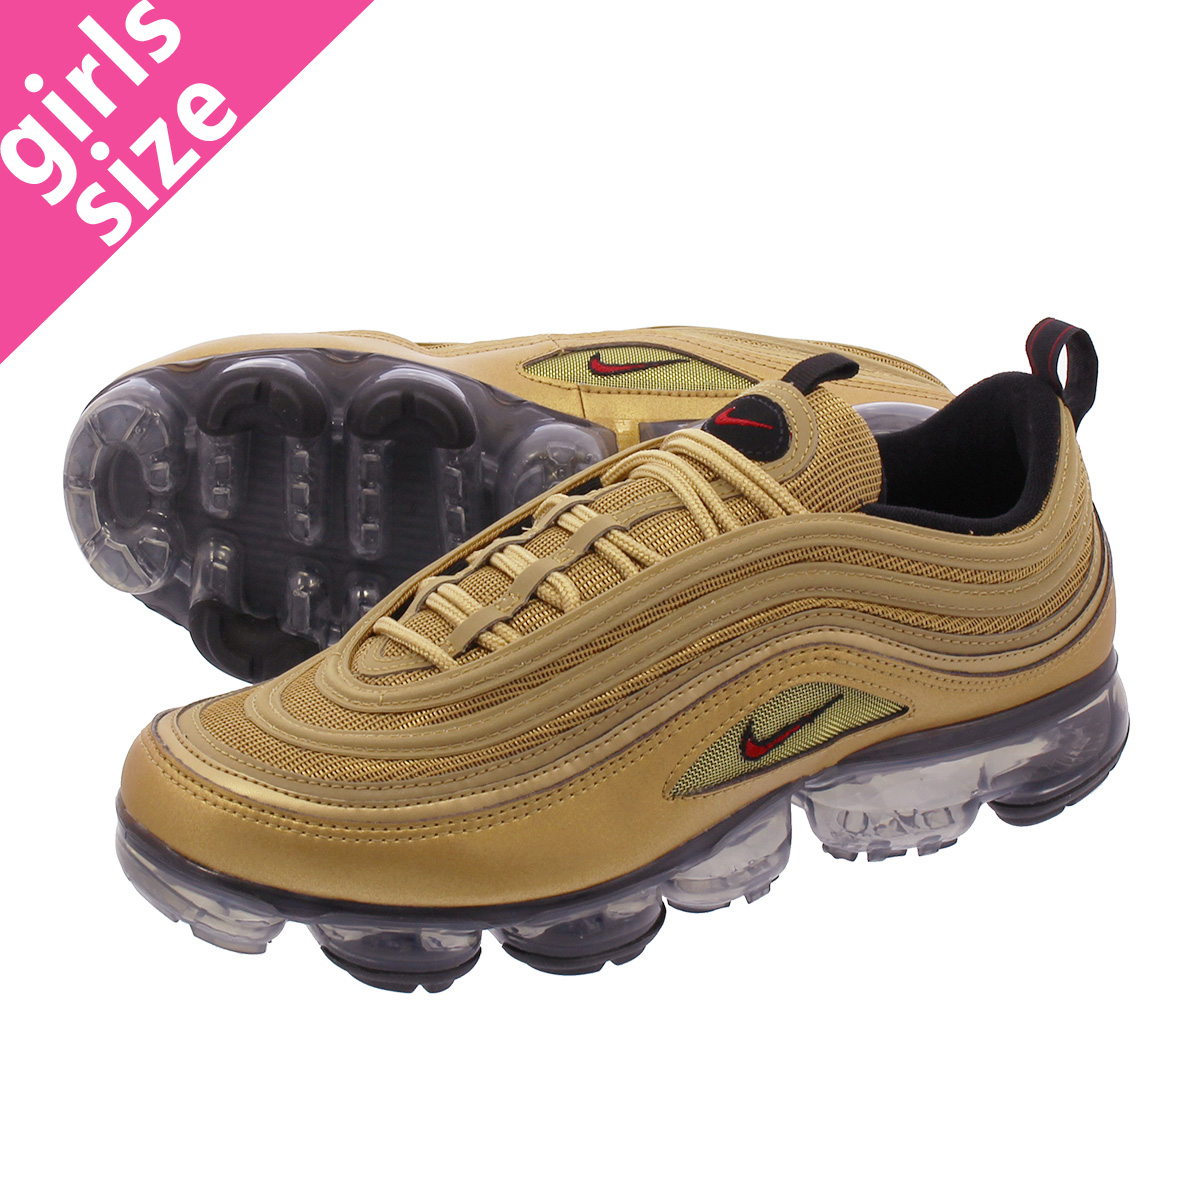 best service ad287 7be51 NIKE AIR VAPORMAX 97 Nike air vapor max 97 METALLIC GOLD/VARSITY  RED/BLACK/WHITE aj7291-700